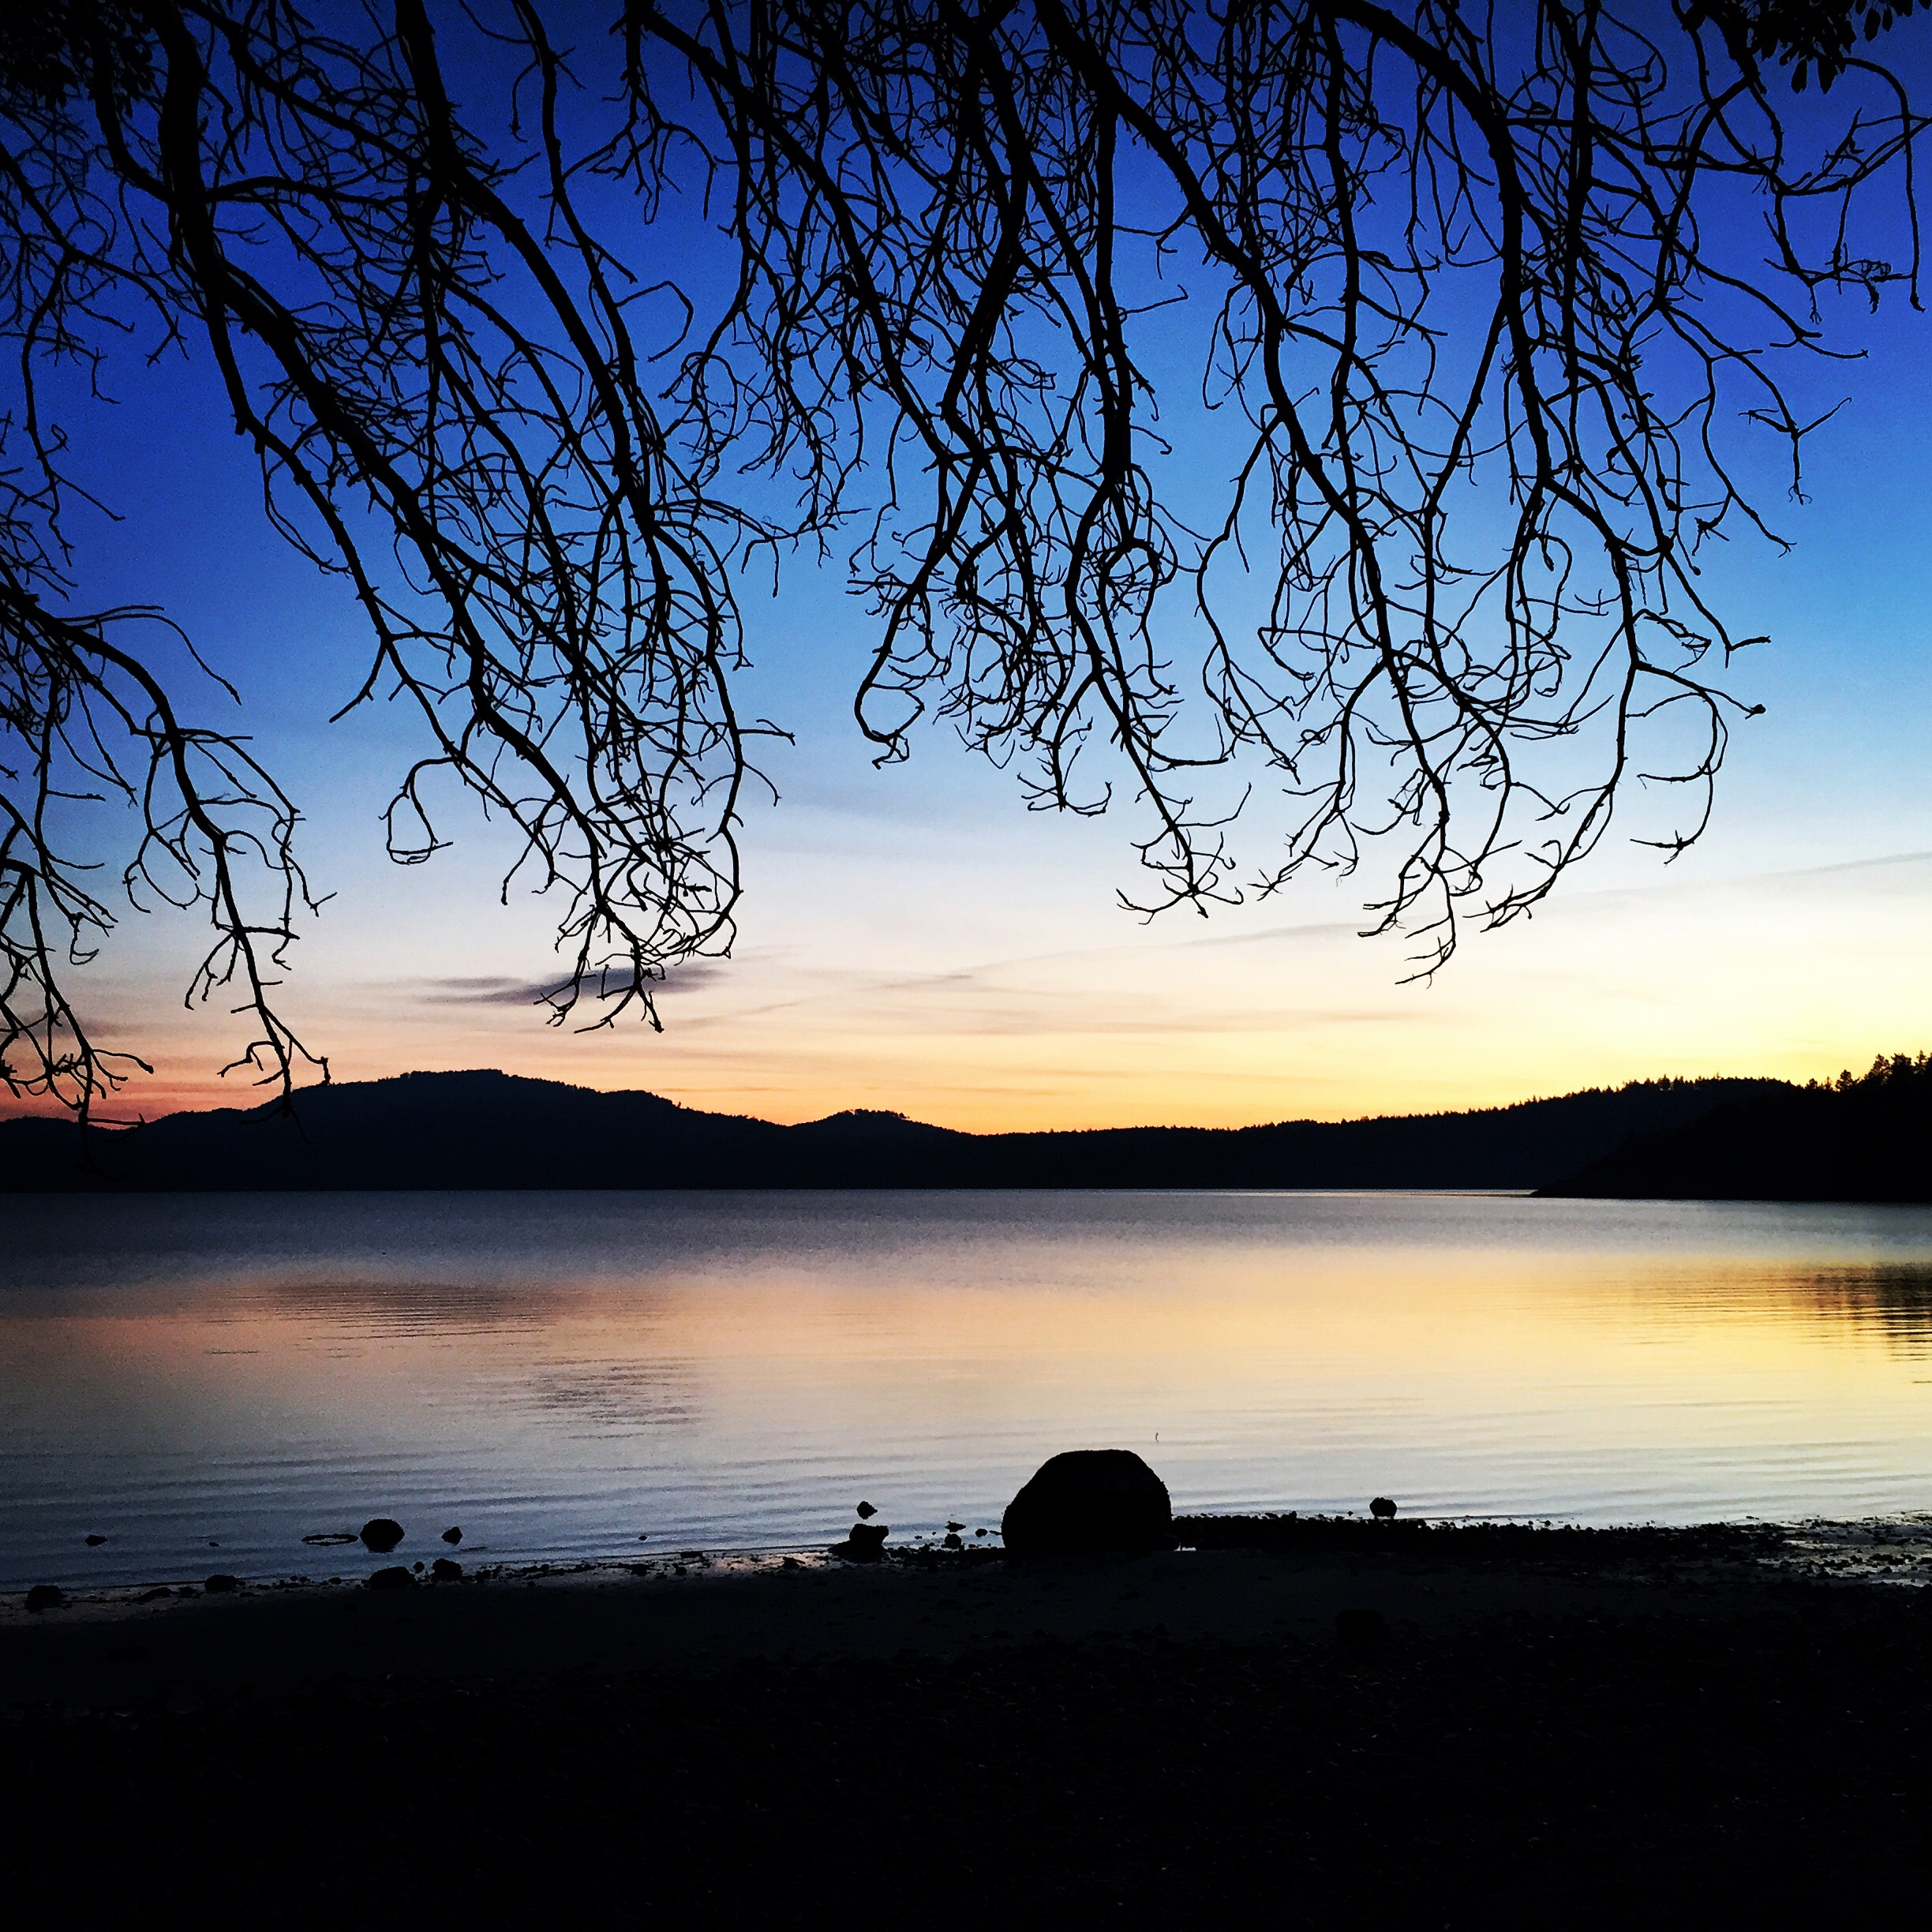 Crescent Beach at sunset - Orcas Island, Washington